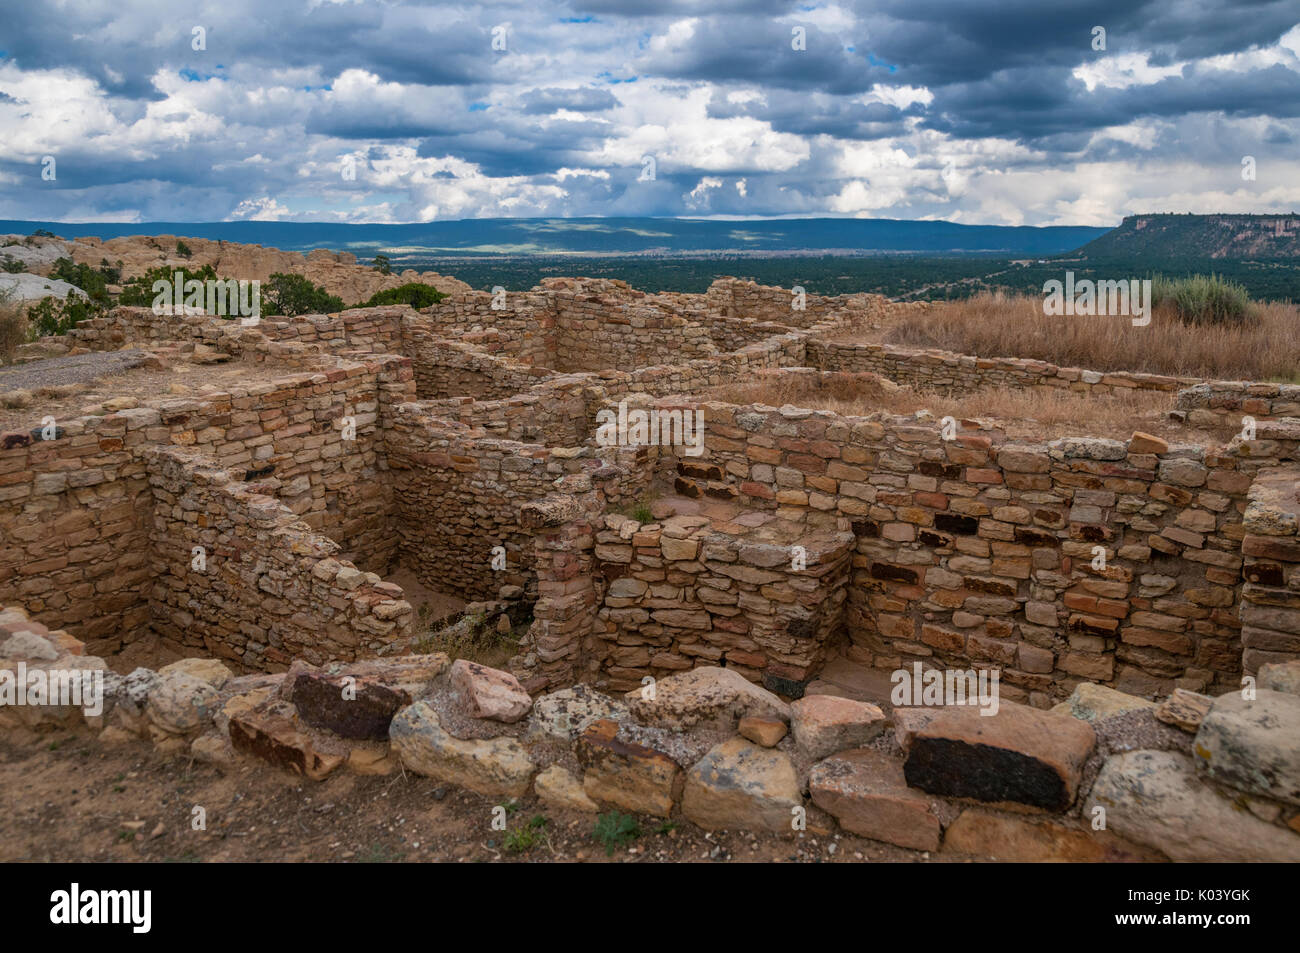 Ancient Puebloan ruin  named by Zuni Indians Atsinna, place of writings on rock, El Morro National Monument, New Mexico, USA. - Stock Image